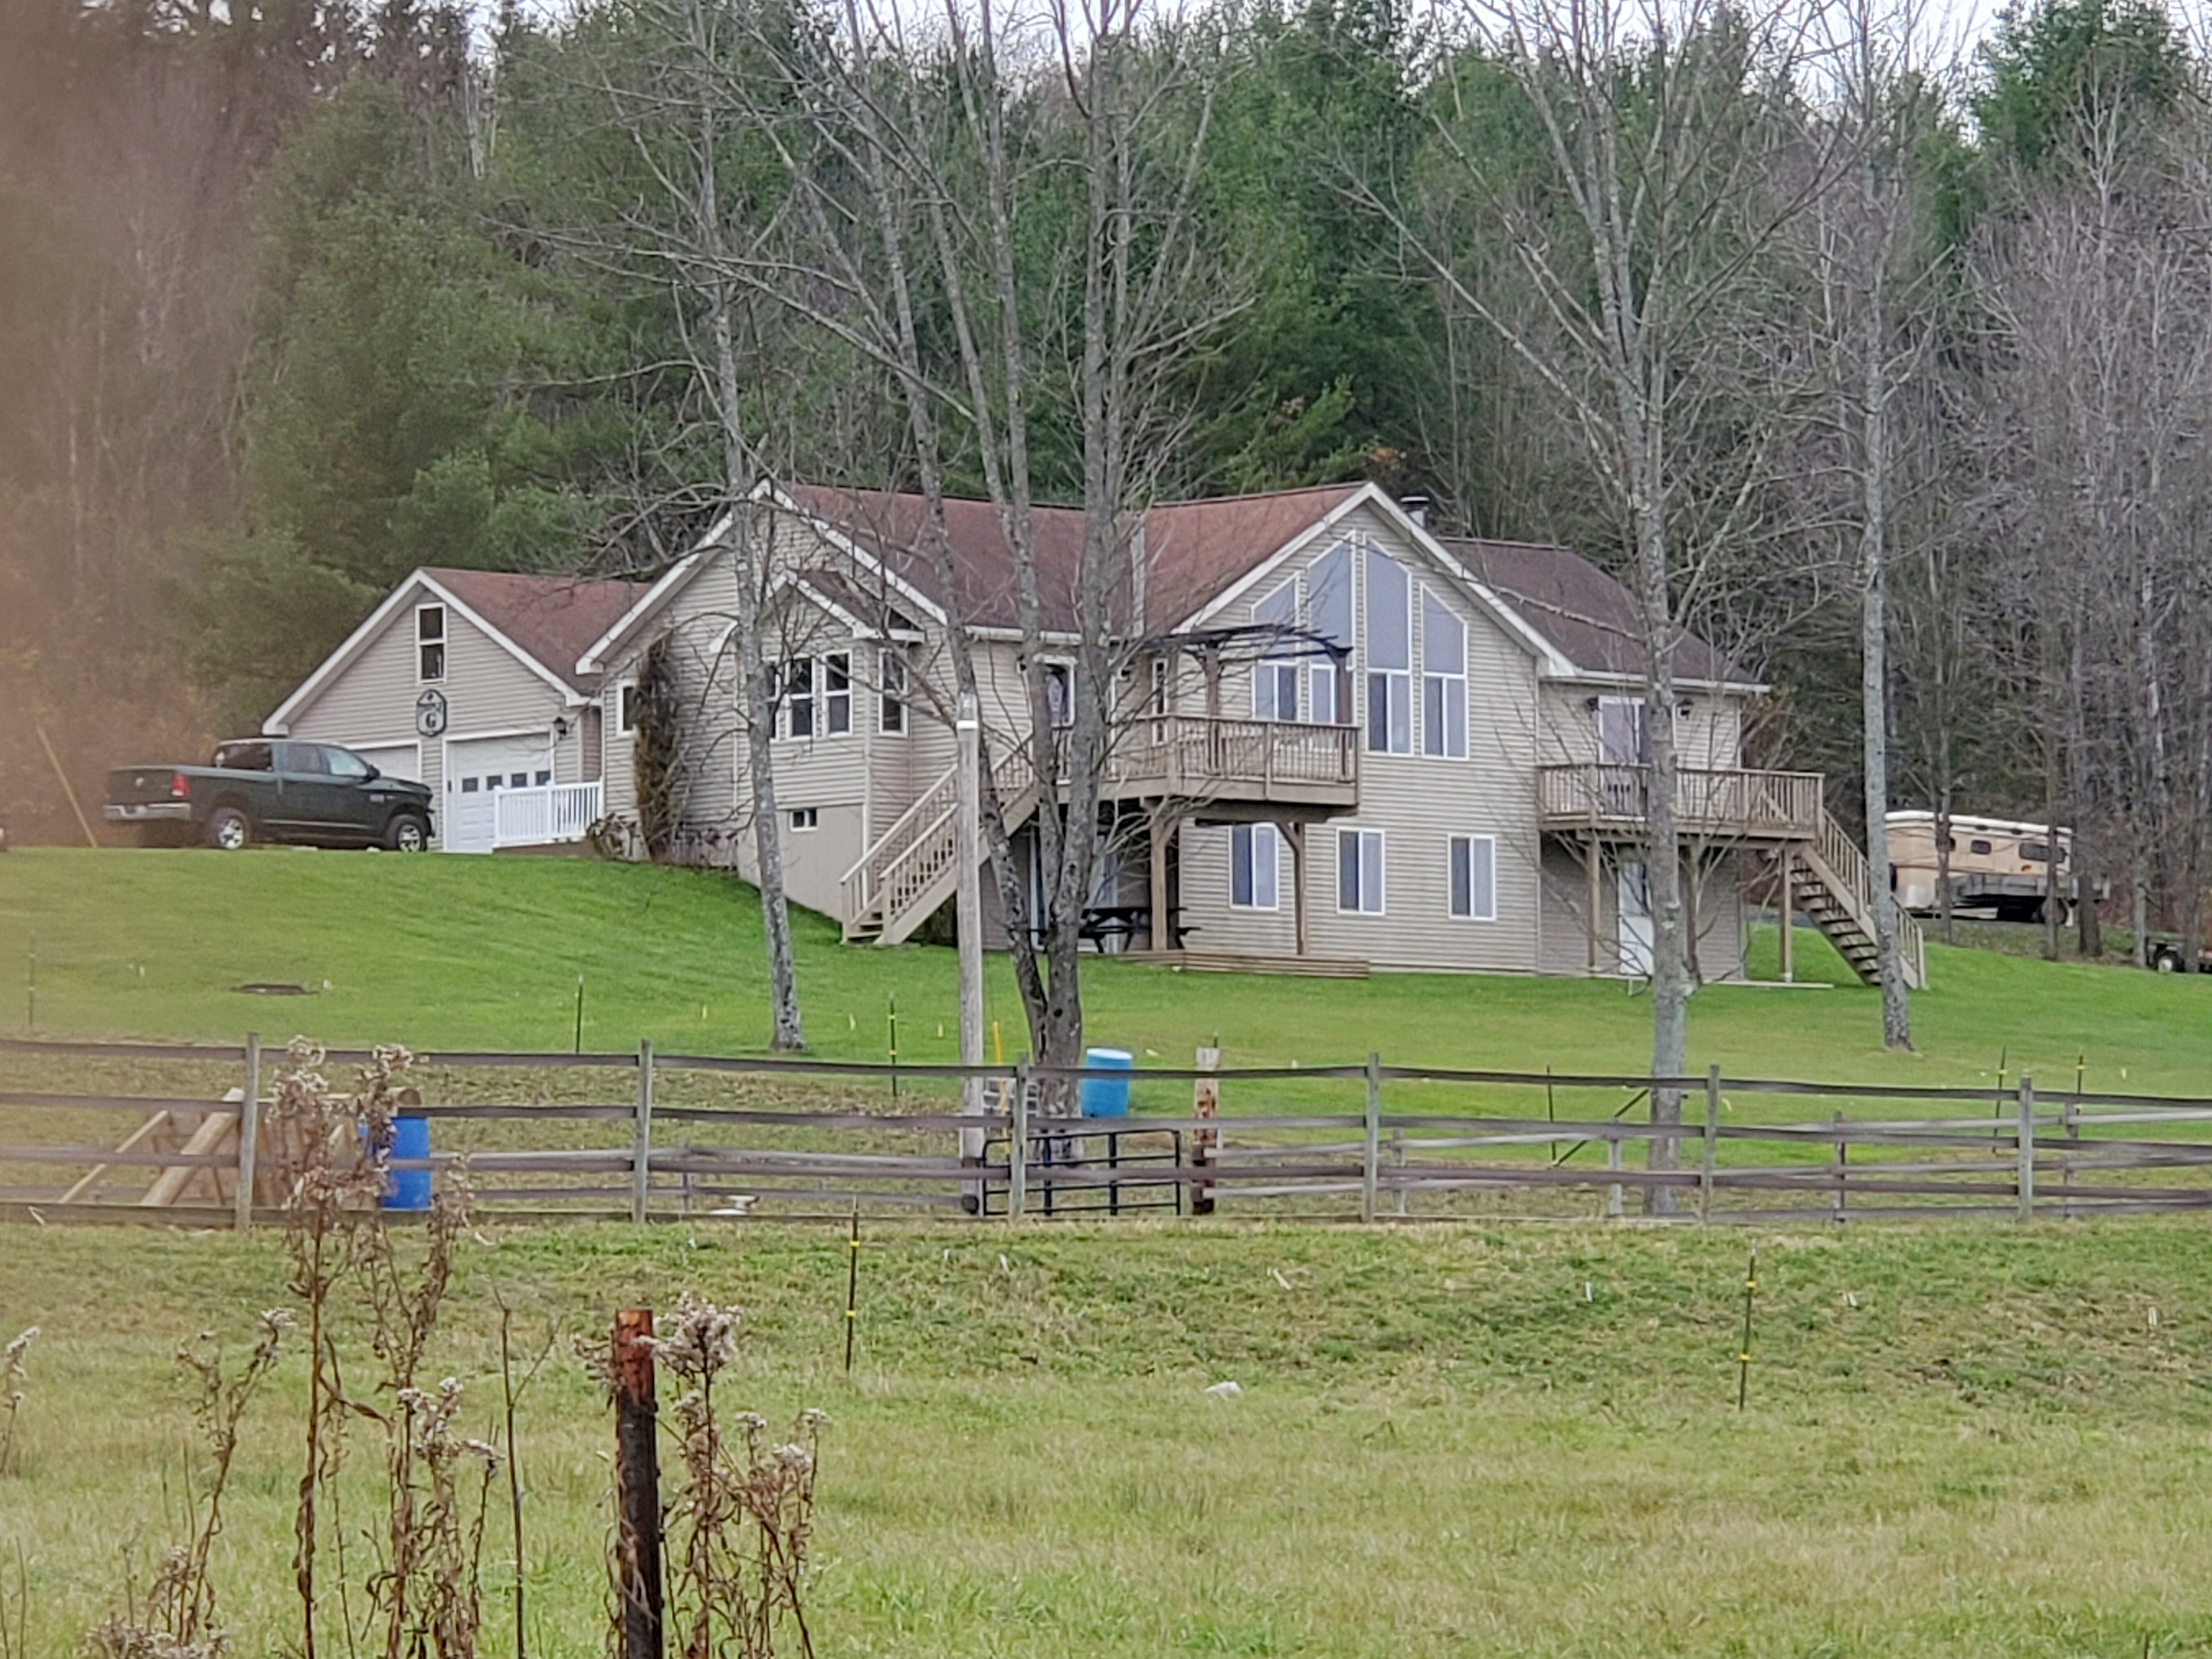 4 Bedrooms / 2.5 Bathrooms - Est. $2,635.00 / Month* for rent in Delanson, NY